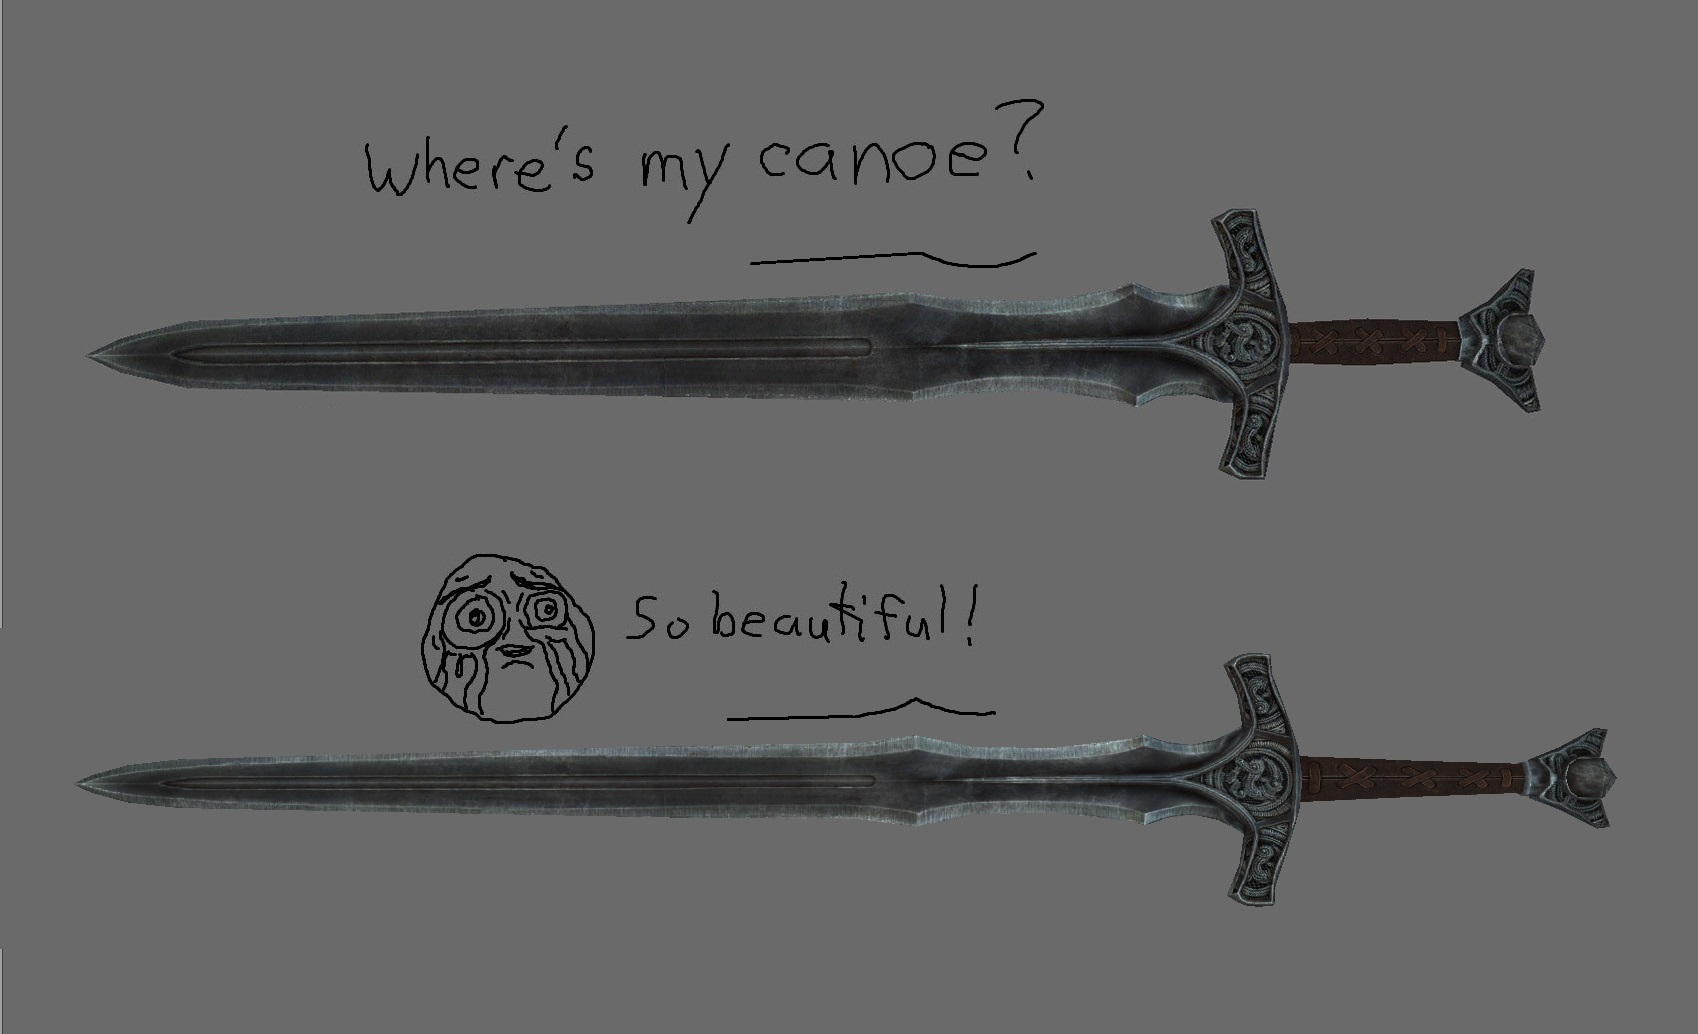 Better Shaped Weapons